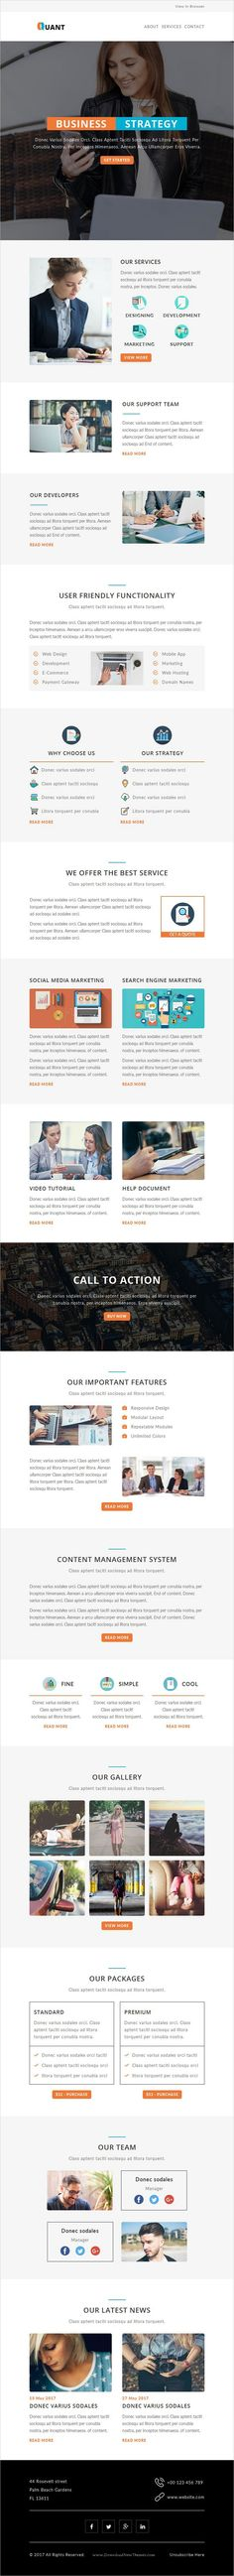 Quant is a multipurpose responsive #Email #Newsletter template for #viral marketing and #promotion with stamp ready builder access download now➩ https://themeforest.net/item/quant-multipurpose-responsive-email-template-with-stampready-builder-access/19567298?ref=Datasata